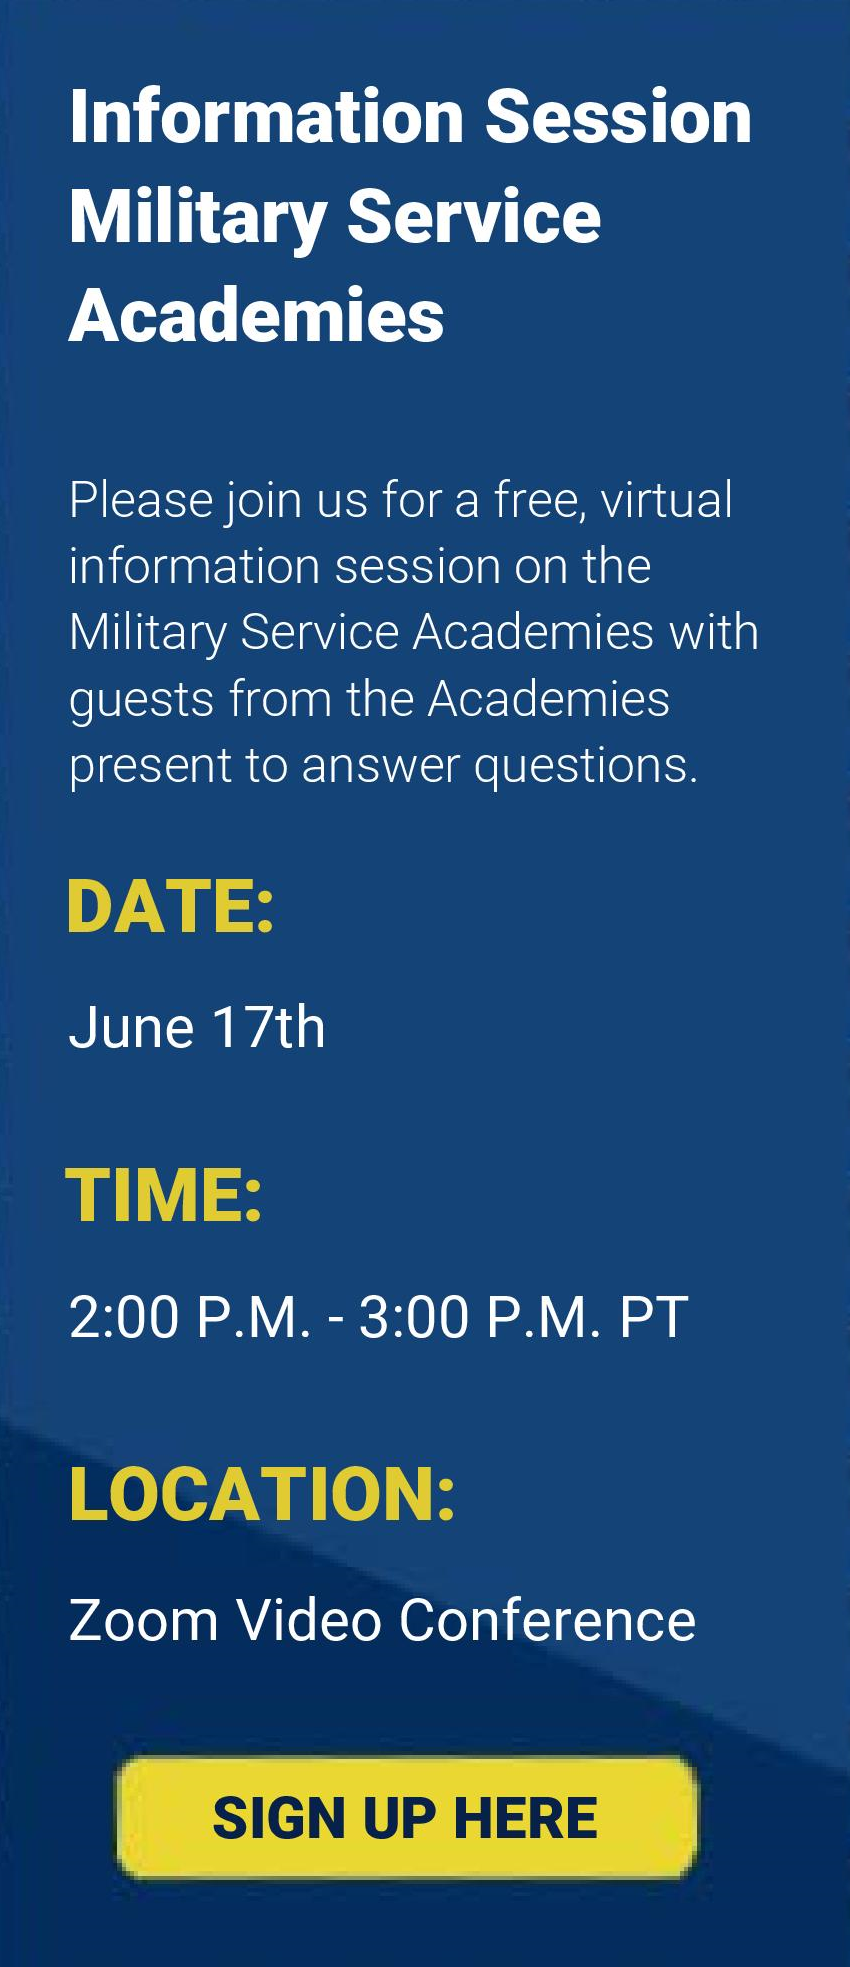 Information Session Military Academies - June 17th at 2pm